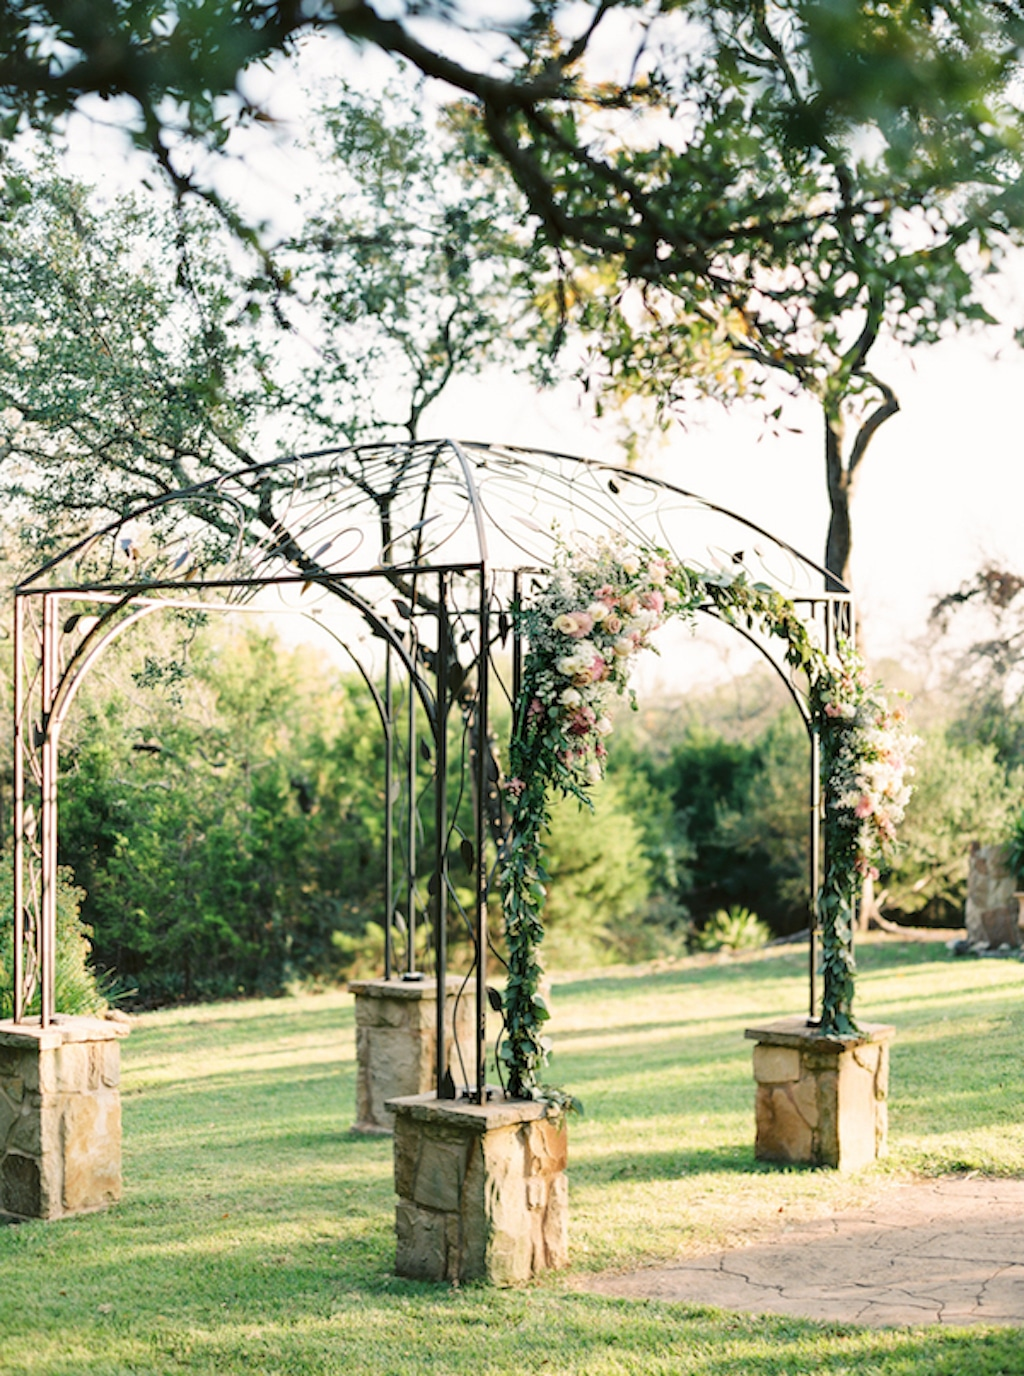 Sun shines on a ceremony arbor at Kindred Oaks, a wedding venue in Georgetown, Texas.